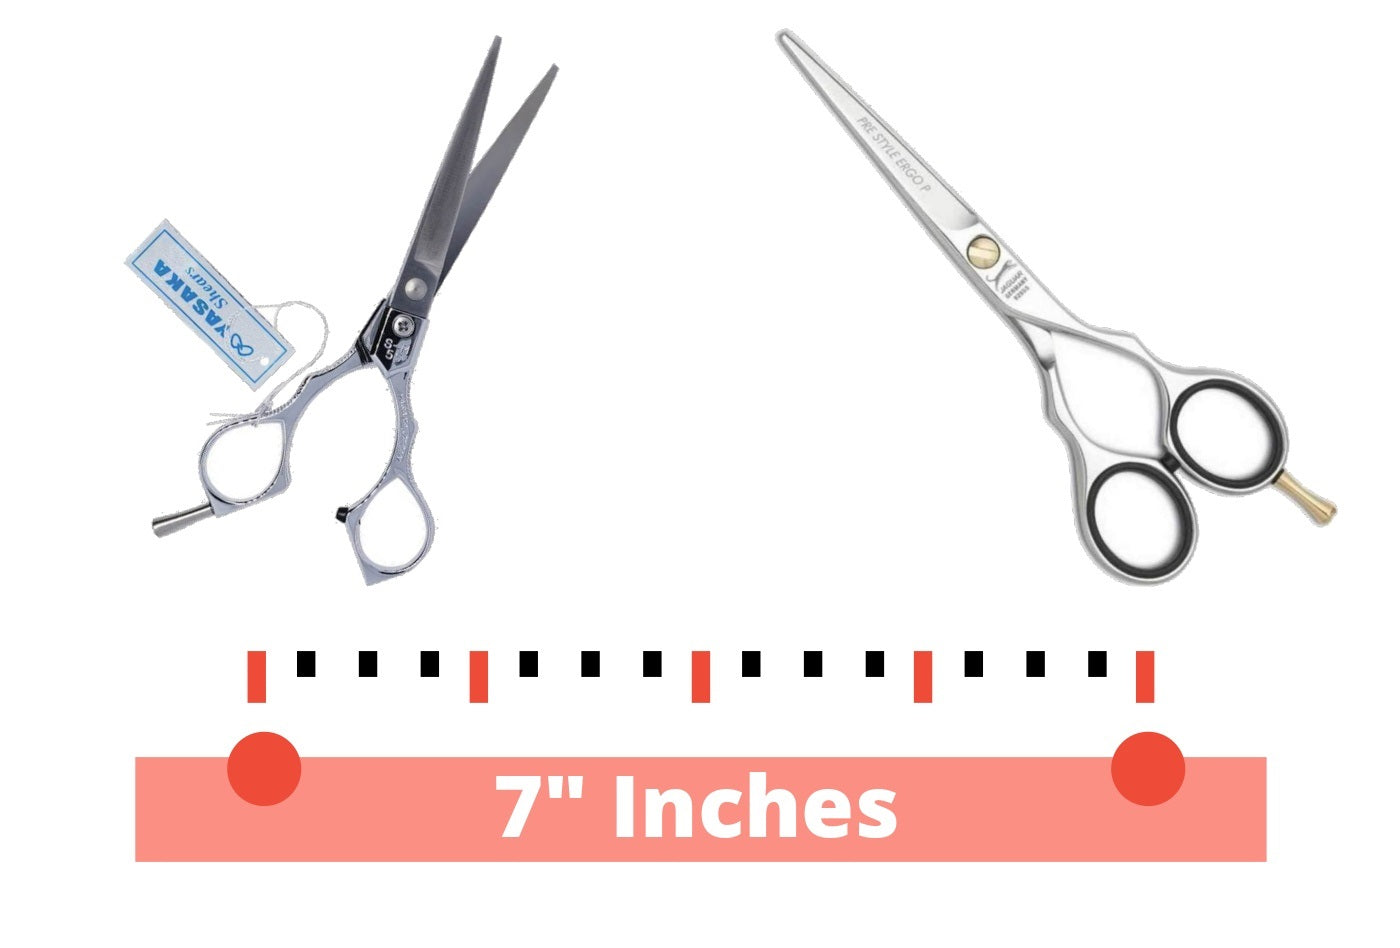 Our 7 Inch Hairdressing Scissors